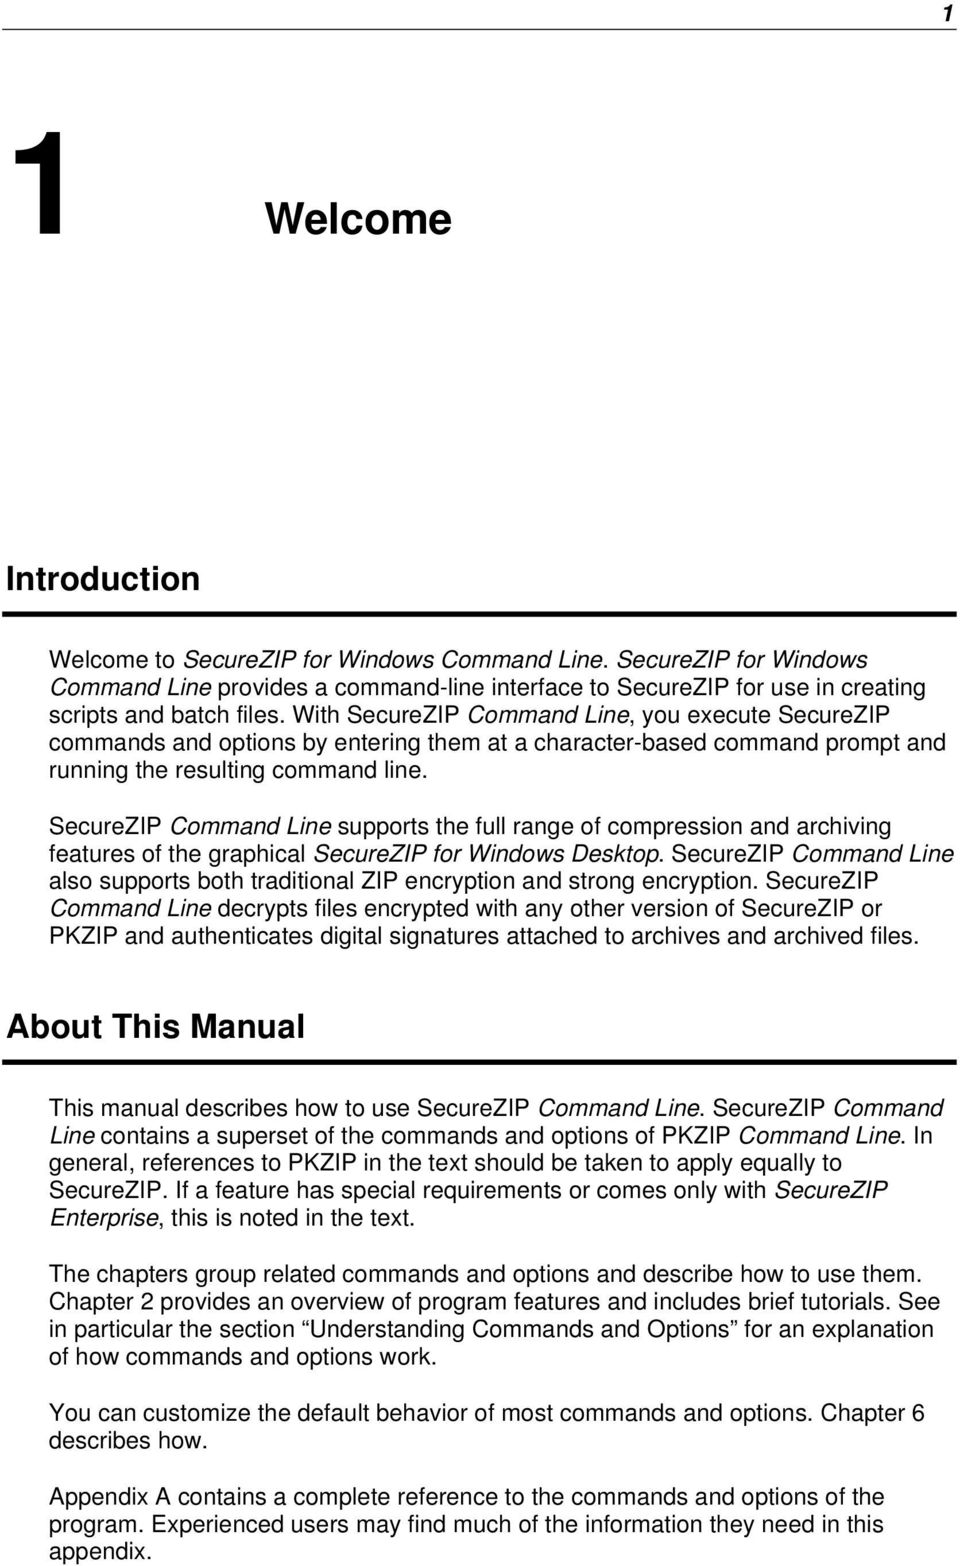 SecureZIP for Windows Command Line  Users Manual - PDF